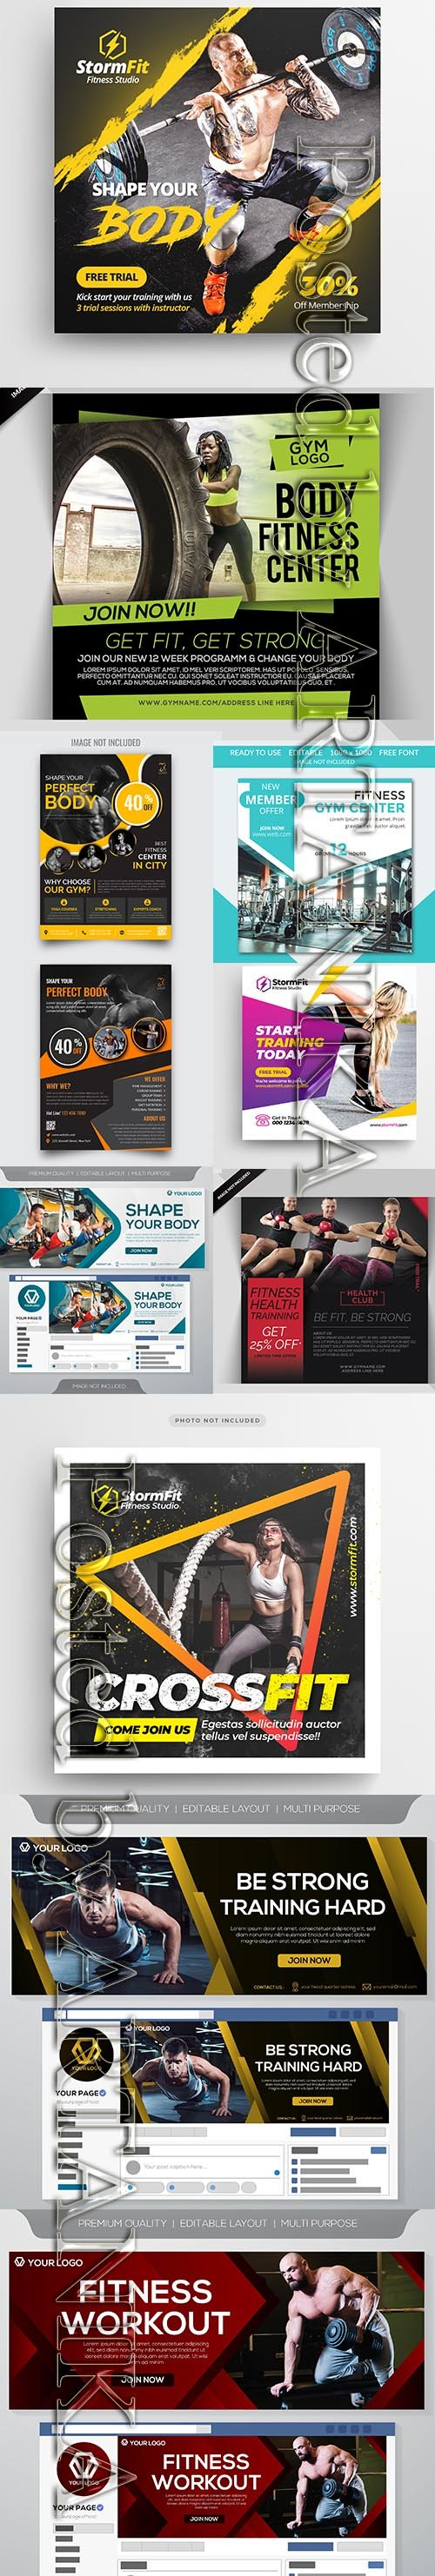 Modern Gym Flyer and Fitness Social Media Post Template Vol 10